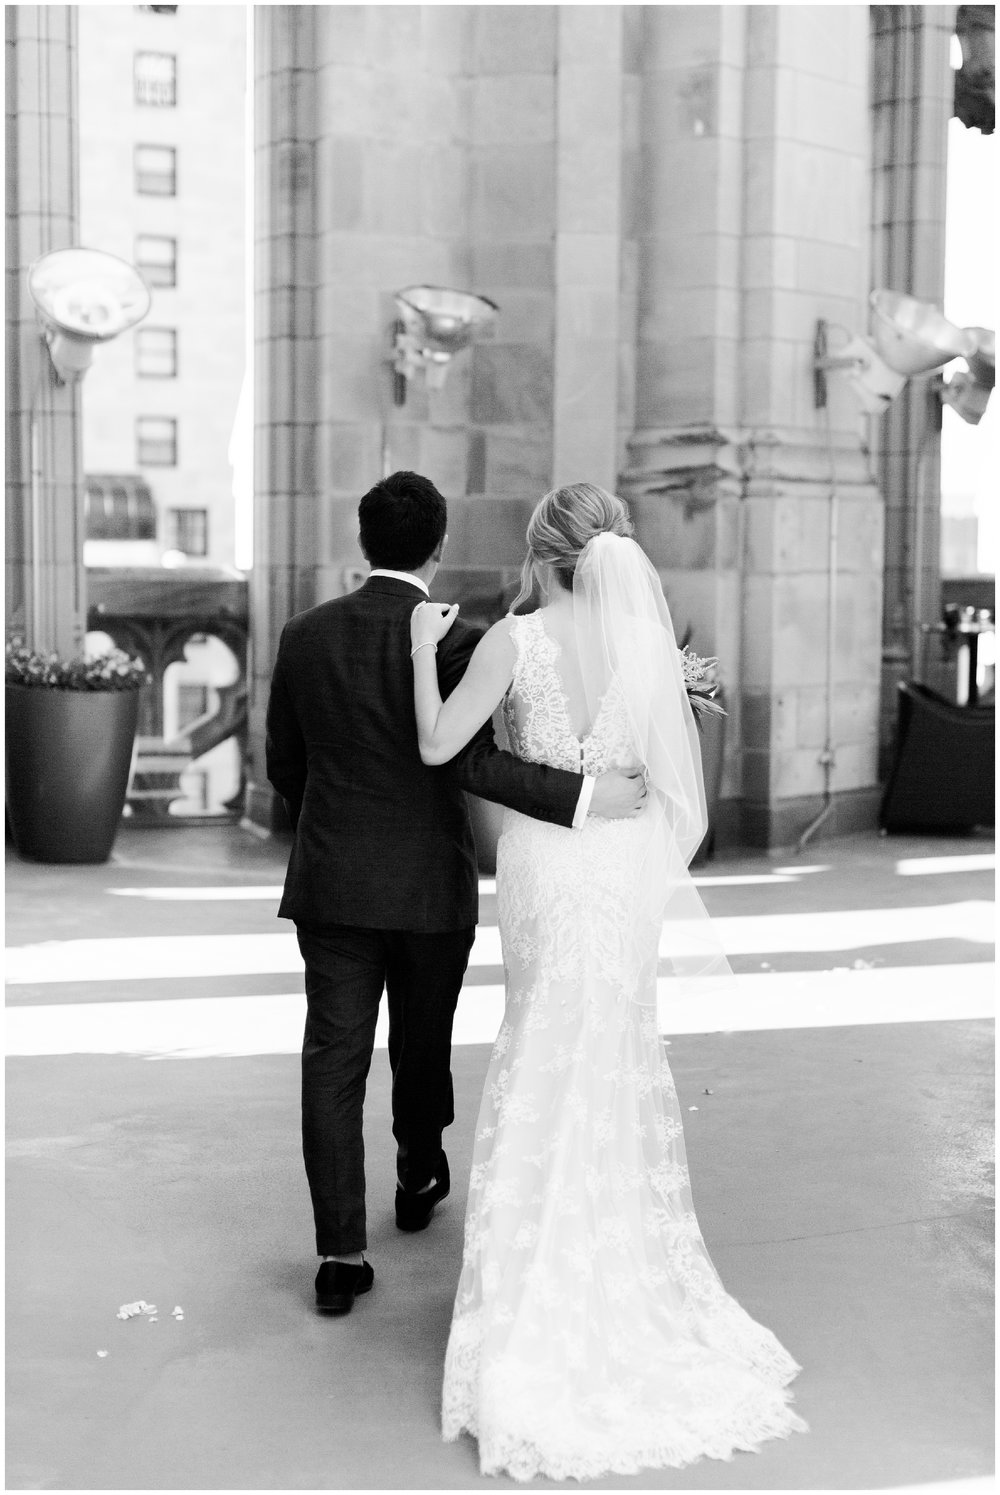 RebeccaHaleyPhotography_Denverweddingphotographer_Denverbride_coloradobride_chicagobride_chicagowedding_tribunetowerwedding_chicagoweddingphotographer_0063.jpg